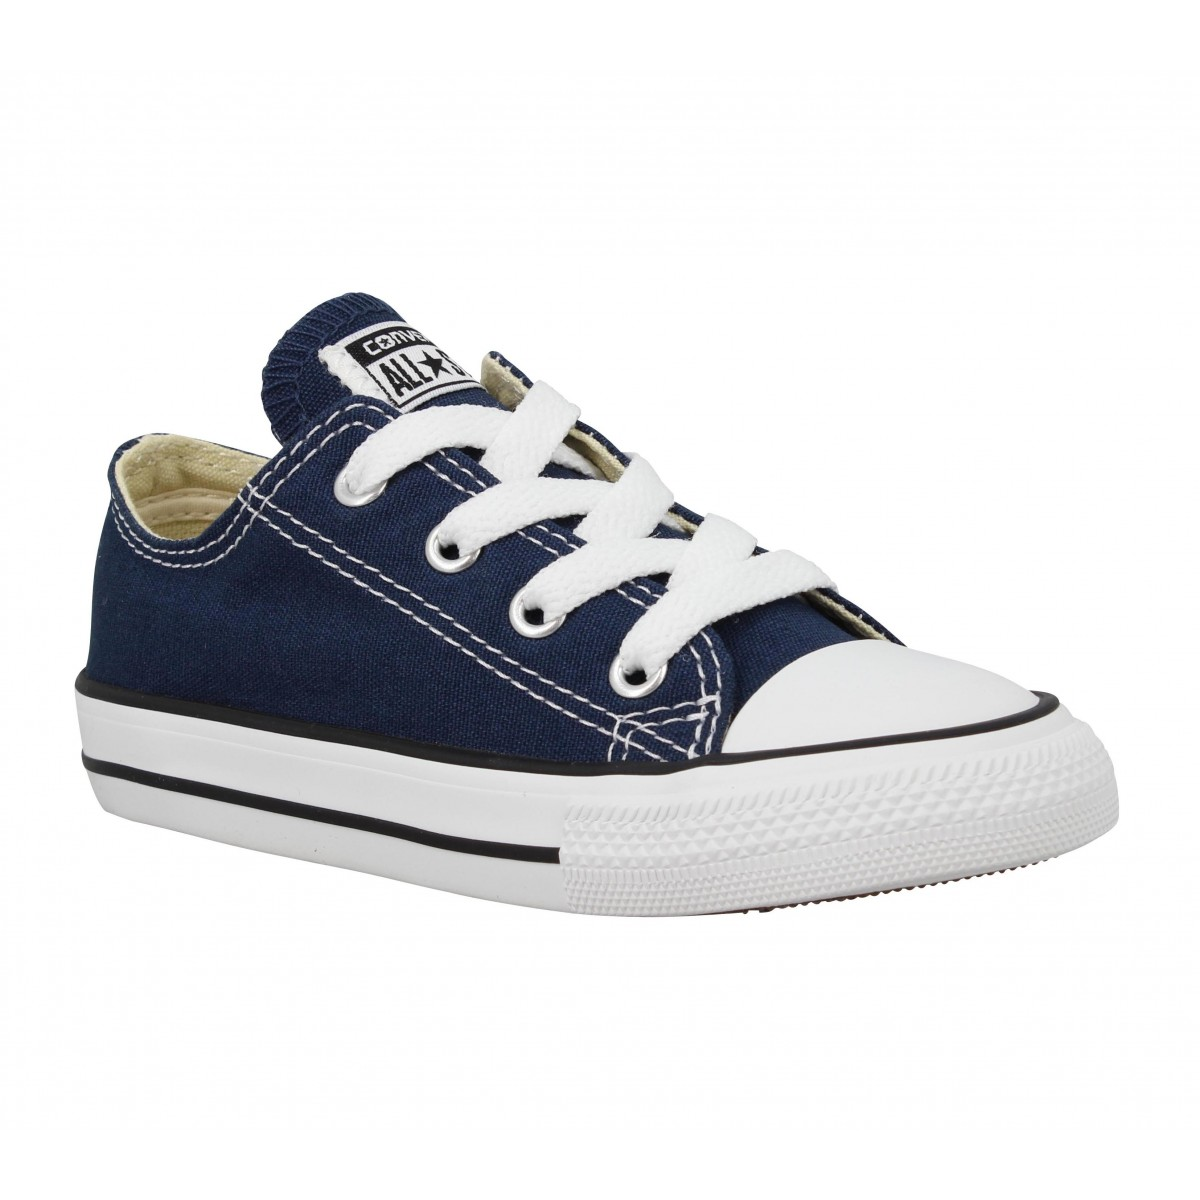 CONVERSE Chuck Taylor All Star toile Enfant-20-Marine